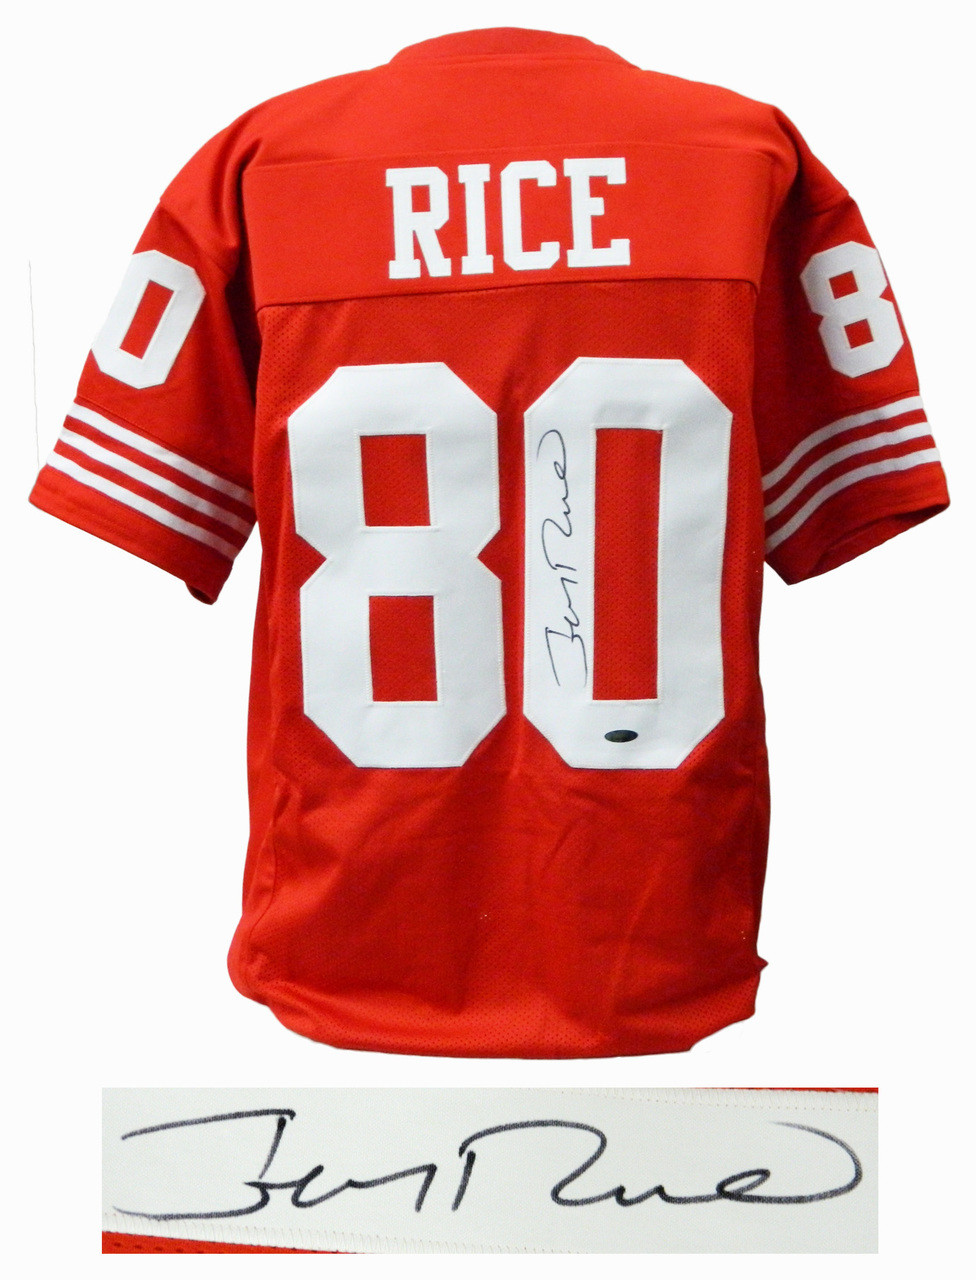 ff54d512cee Jerry Rice Signed Red T B Custom Football Jersey - Nikco Sports